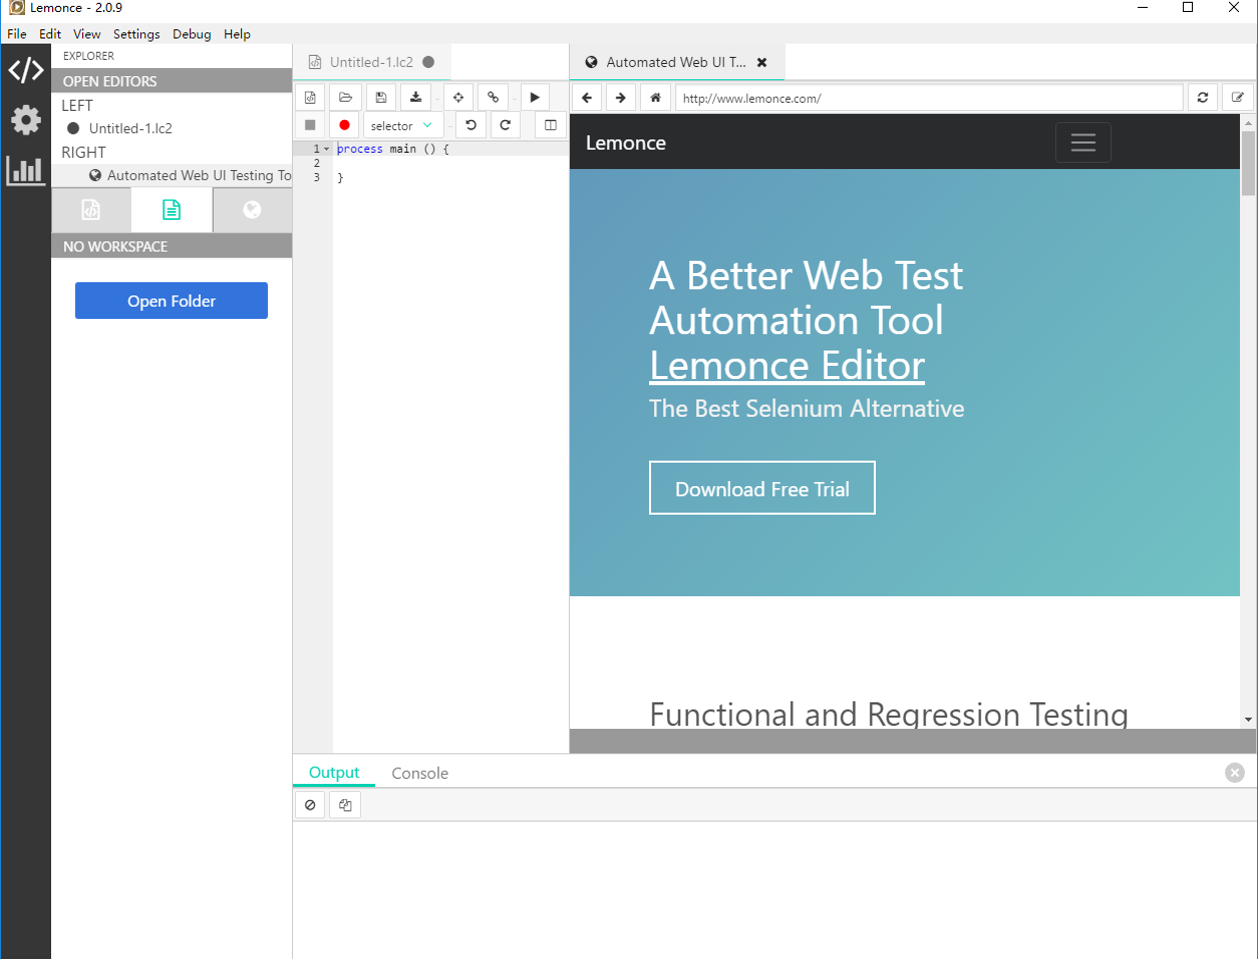 Automation Testing Tools for Web Applications - Automated